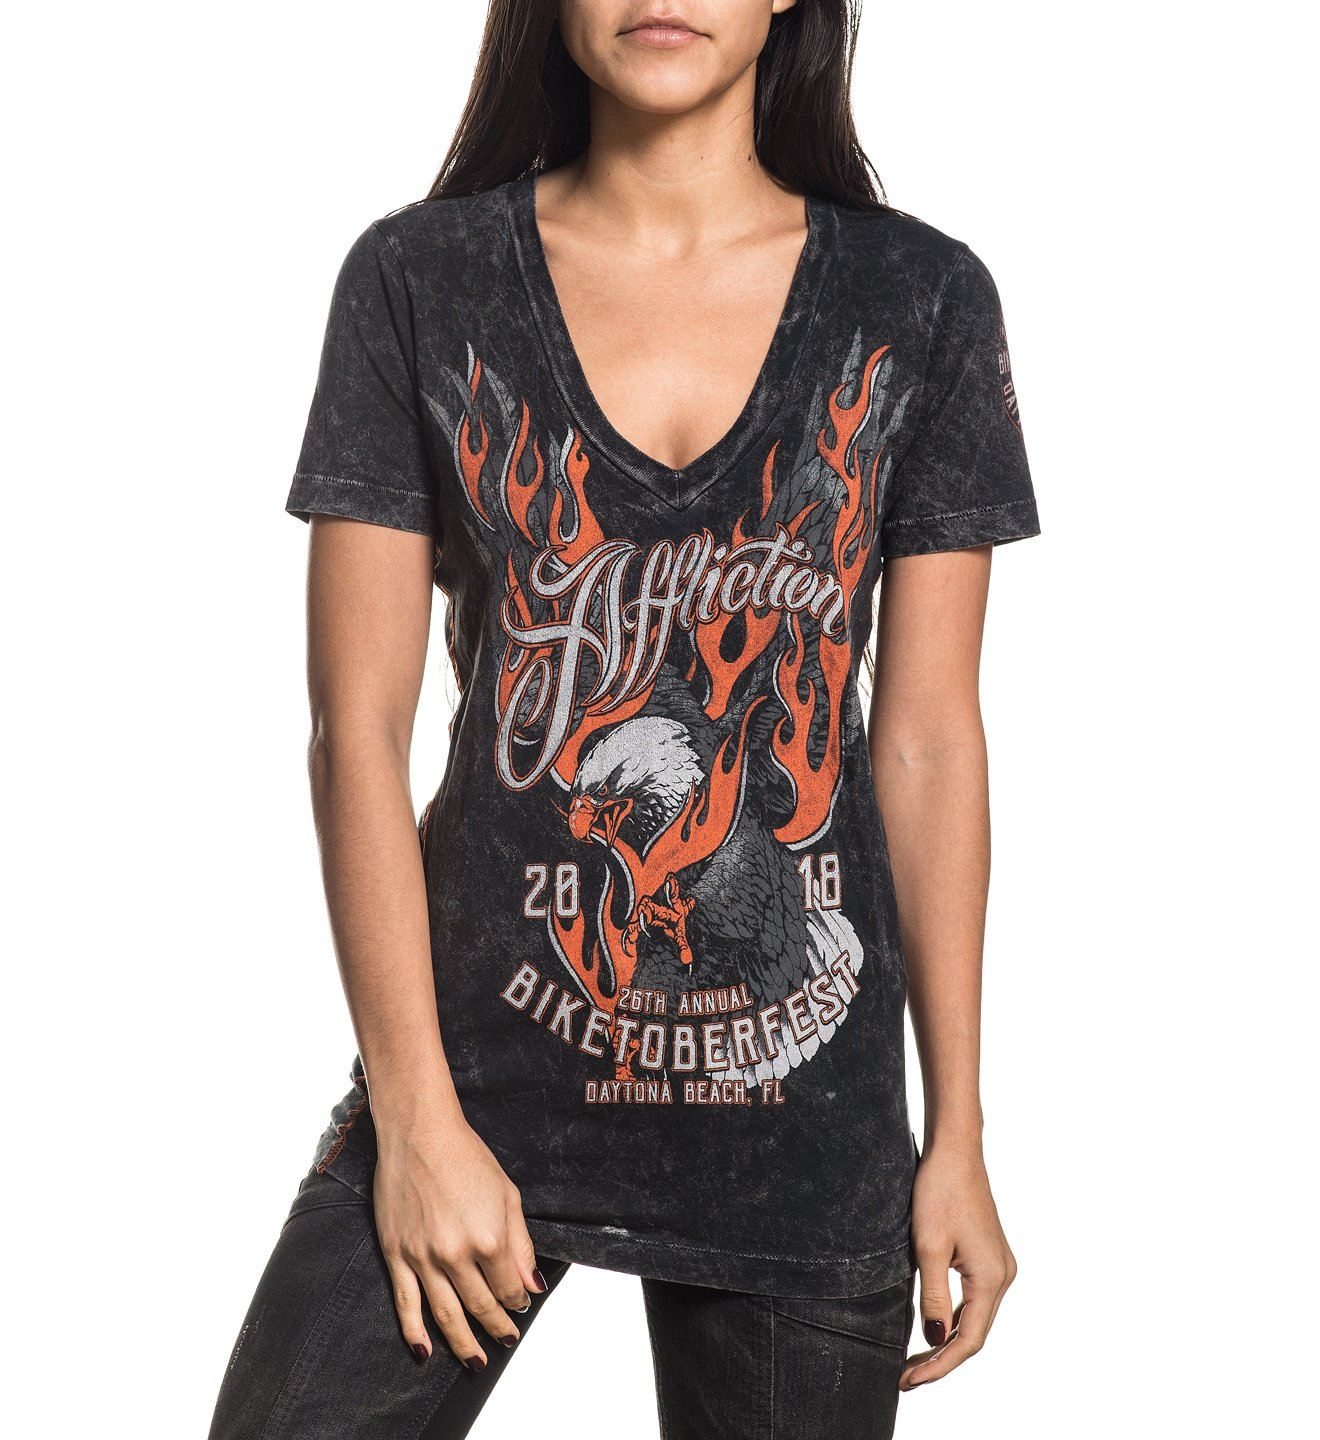 Womens Short Sleeve Tees - Biketoberfest 2018